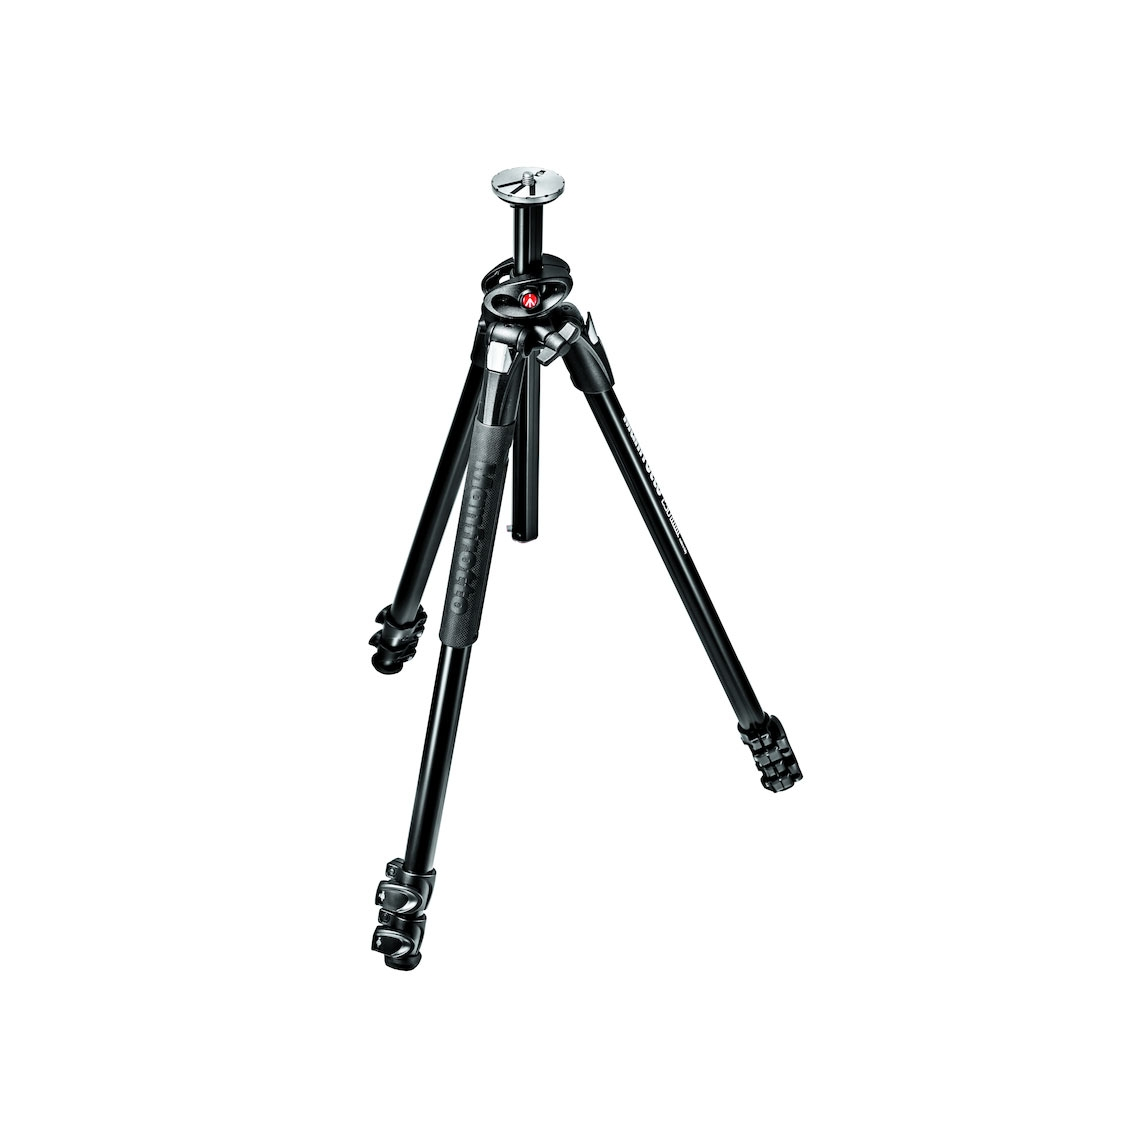 Manfrotto 290 DUAL Aluminum 3-Section Tripod